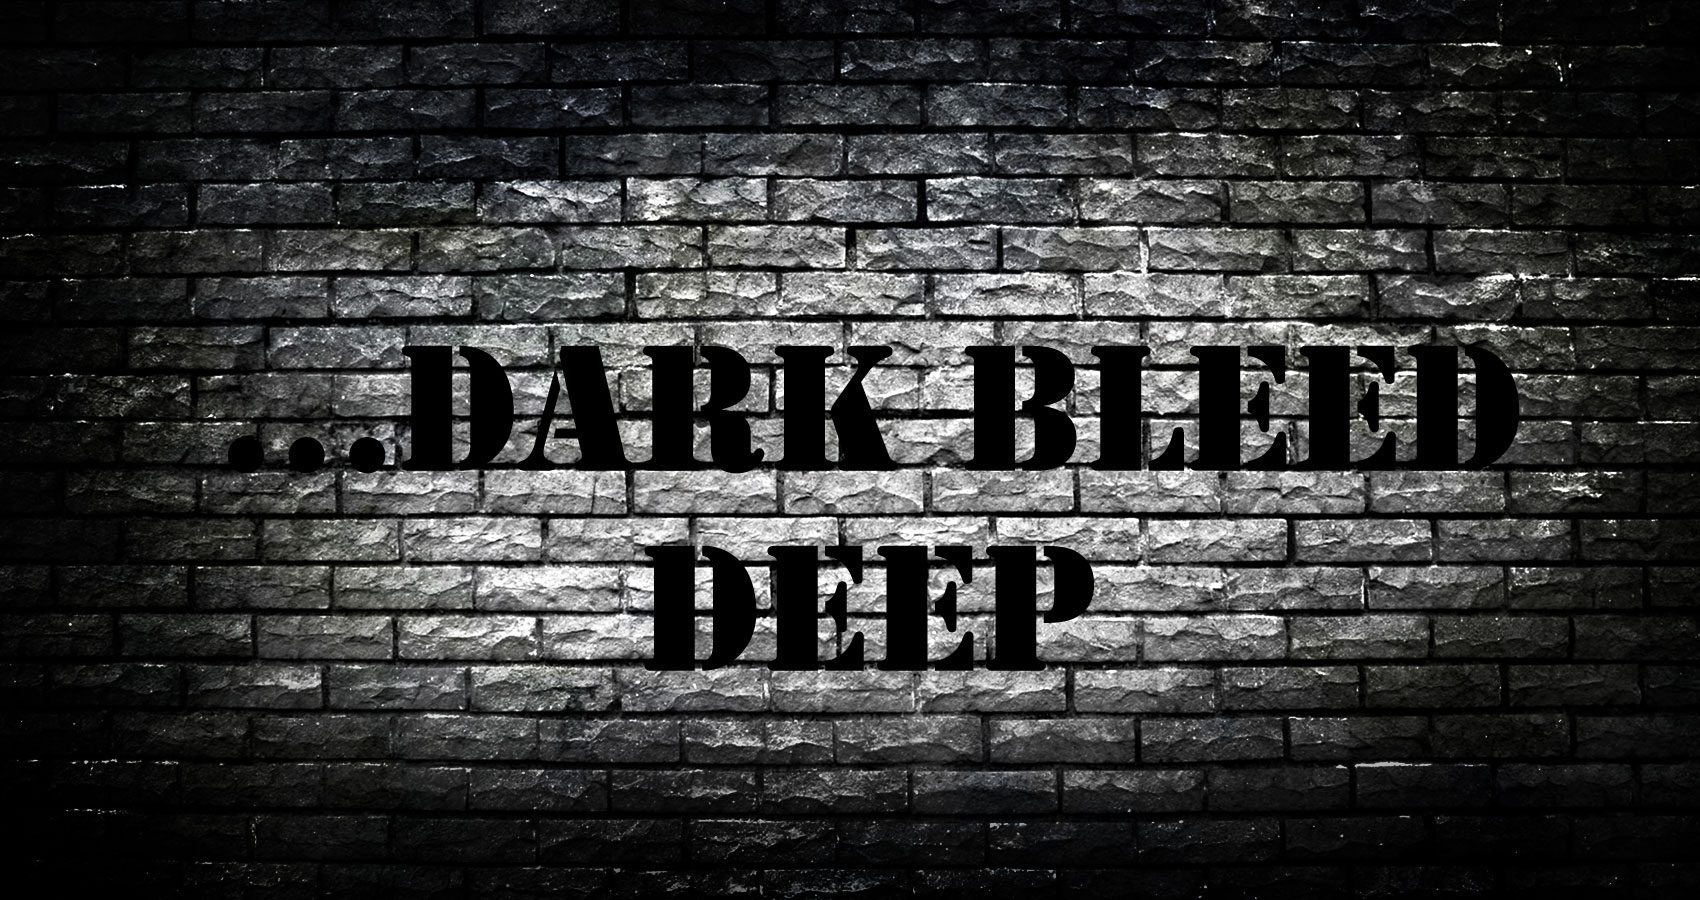 ...dark bleed deep by Jackson Thomas at Spillwords.com